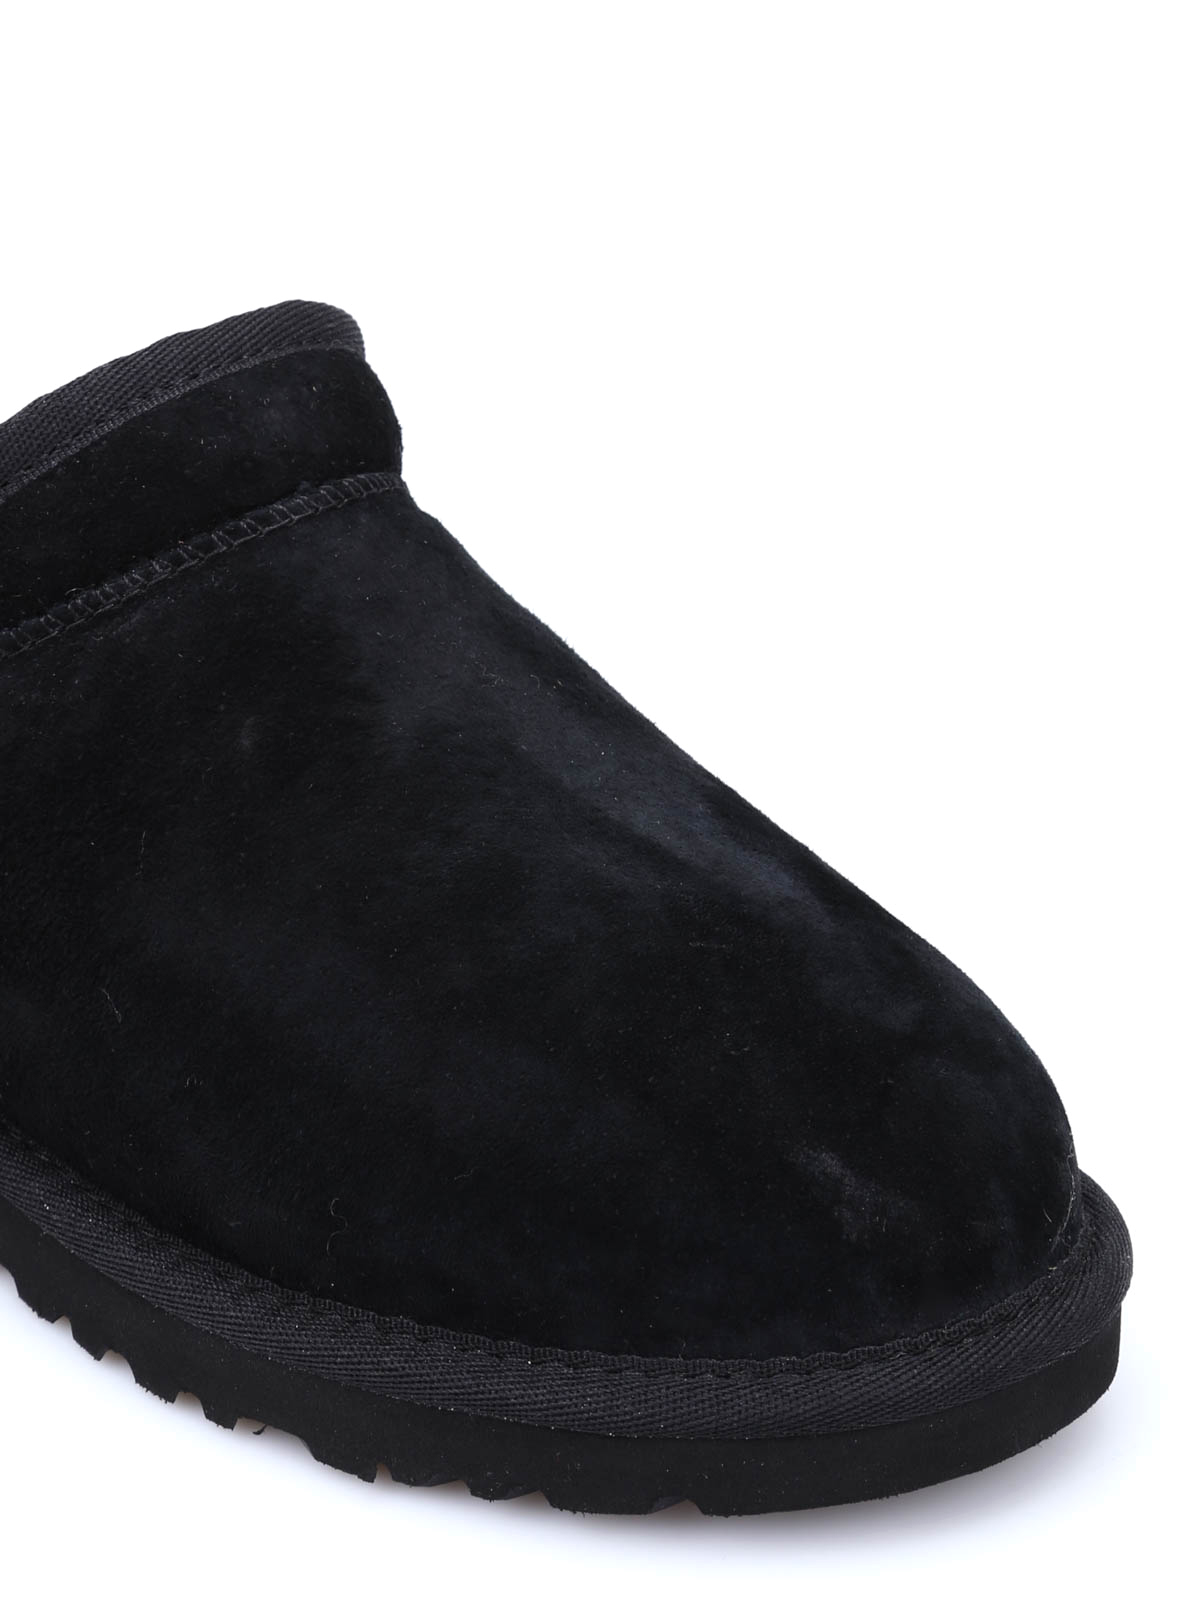 8ea14110610 Ugg - Classic Slipper - Loafers   Slippers - 1009249 W   BLK